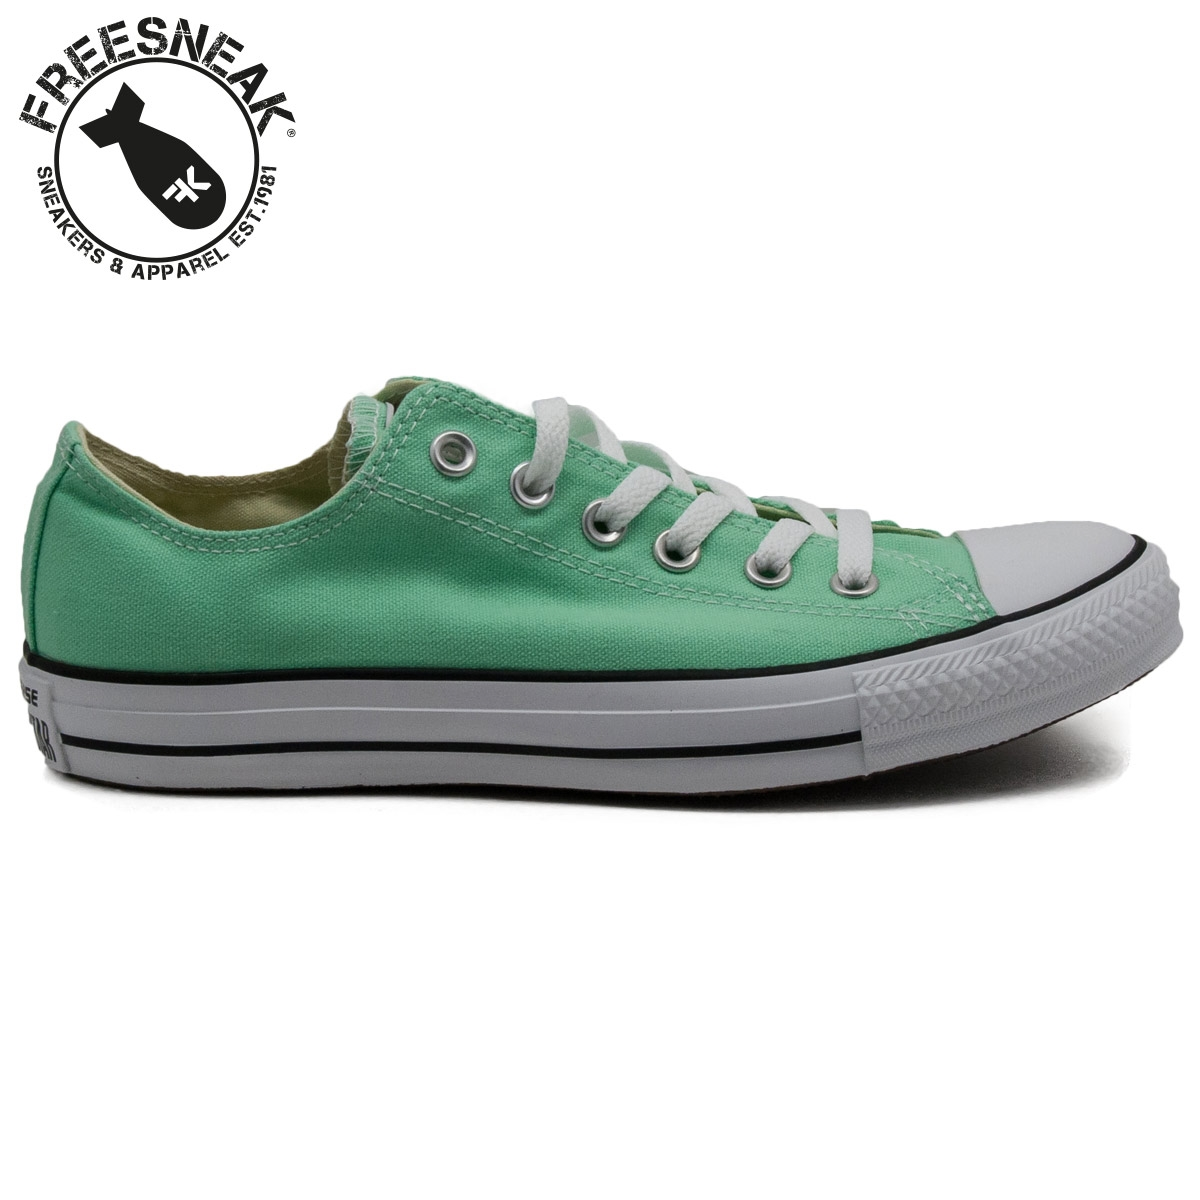 converse all star alte verdi